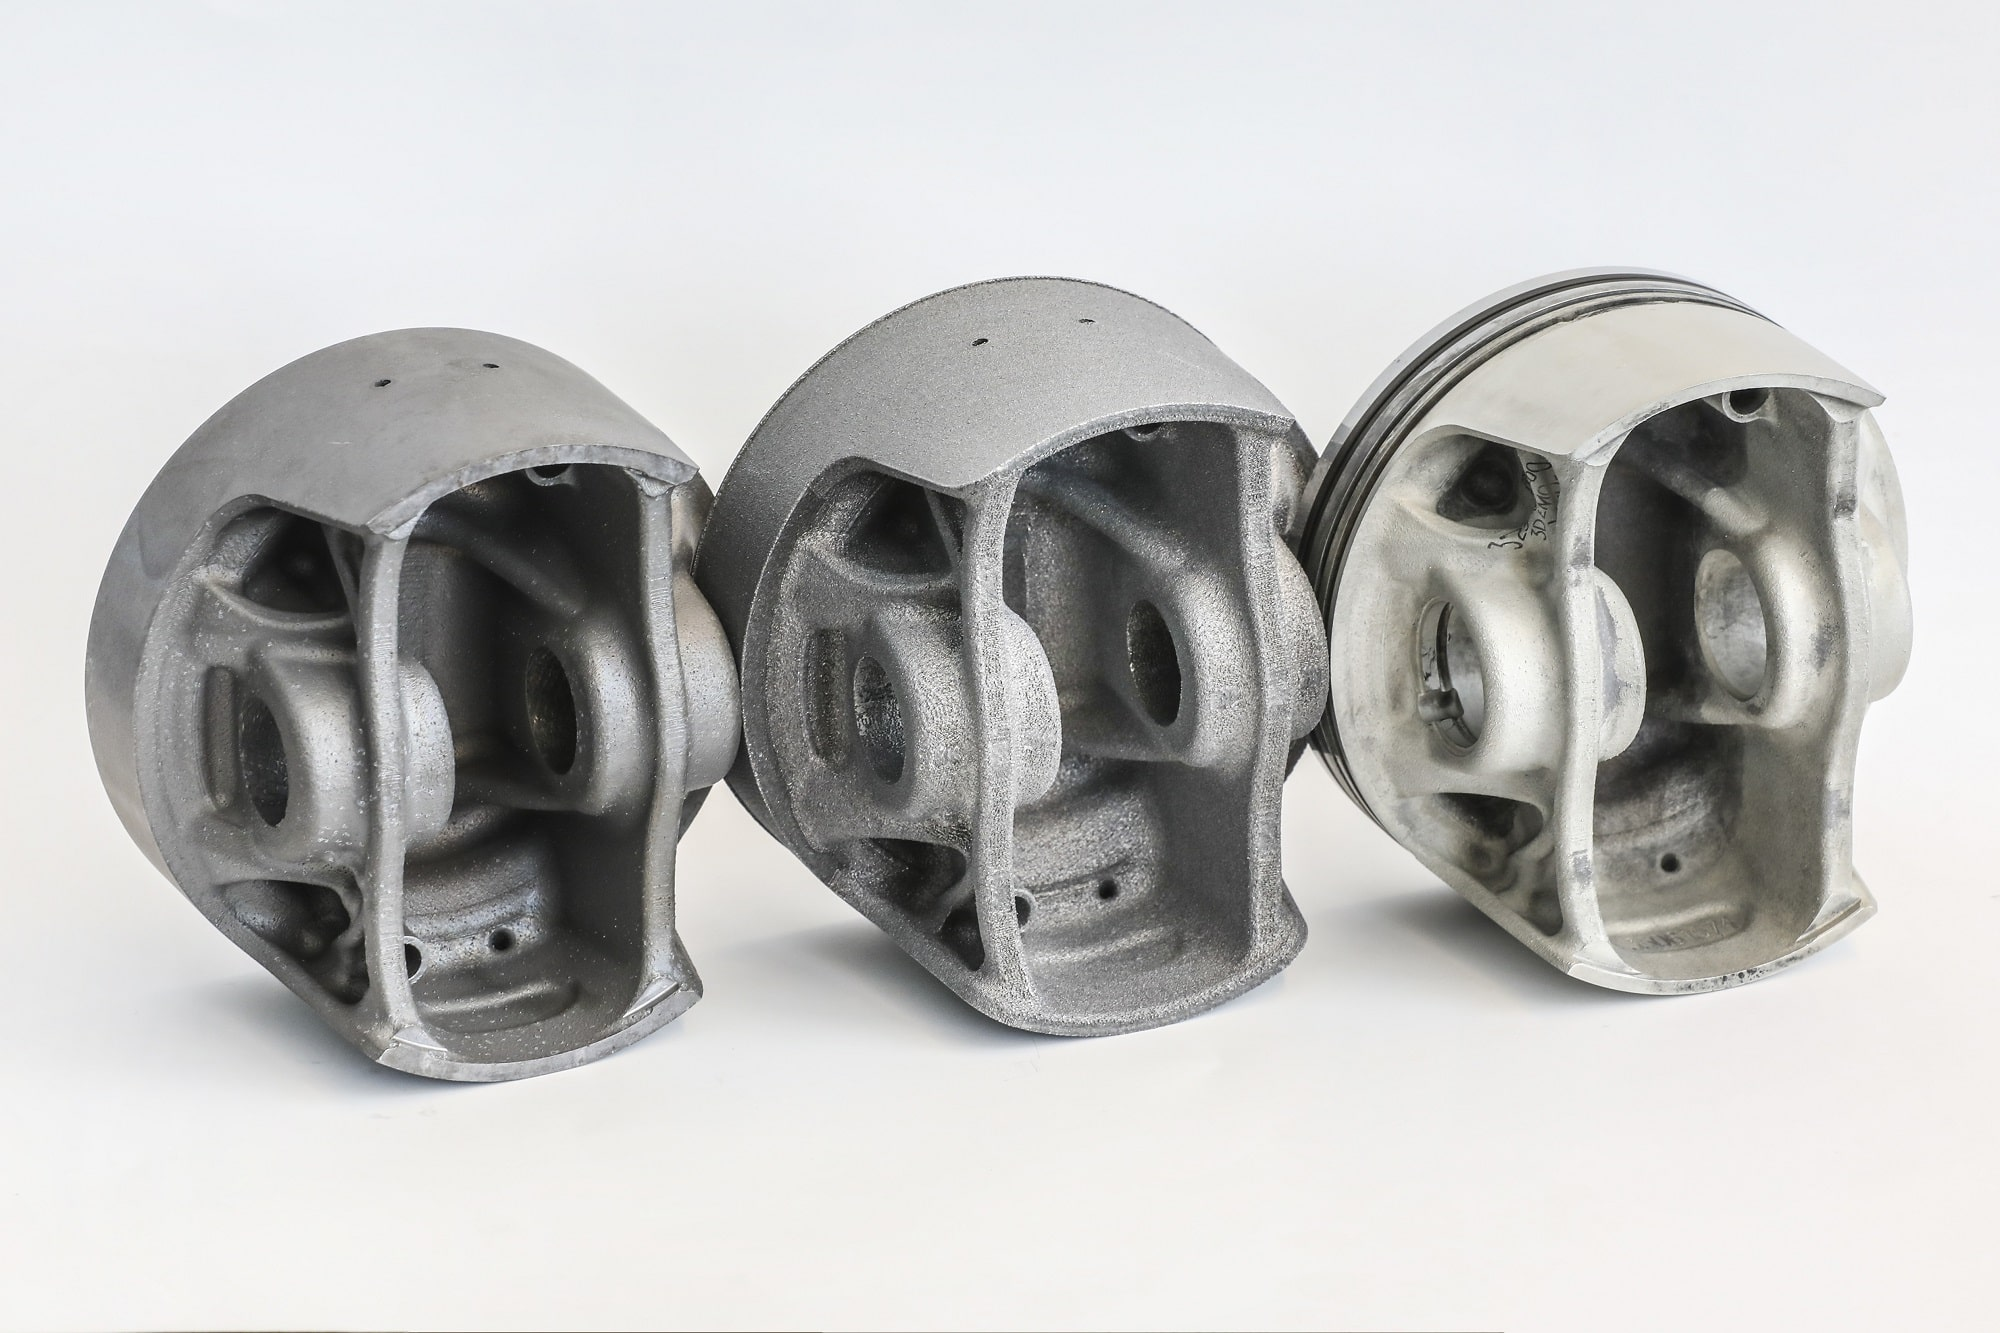 3D Printed Pistons